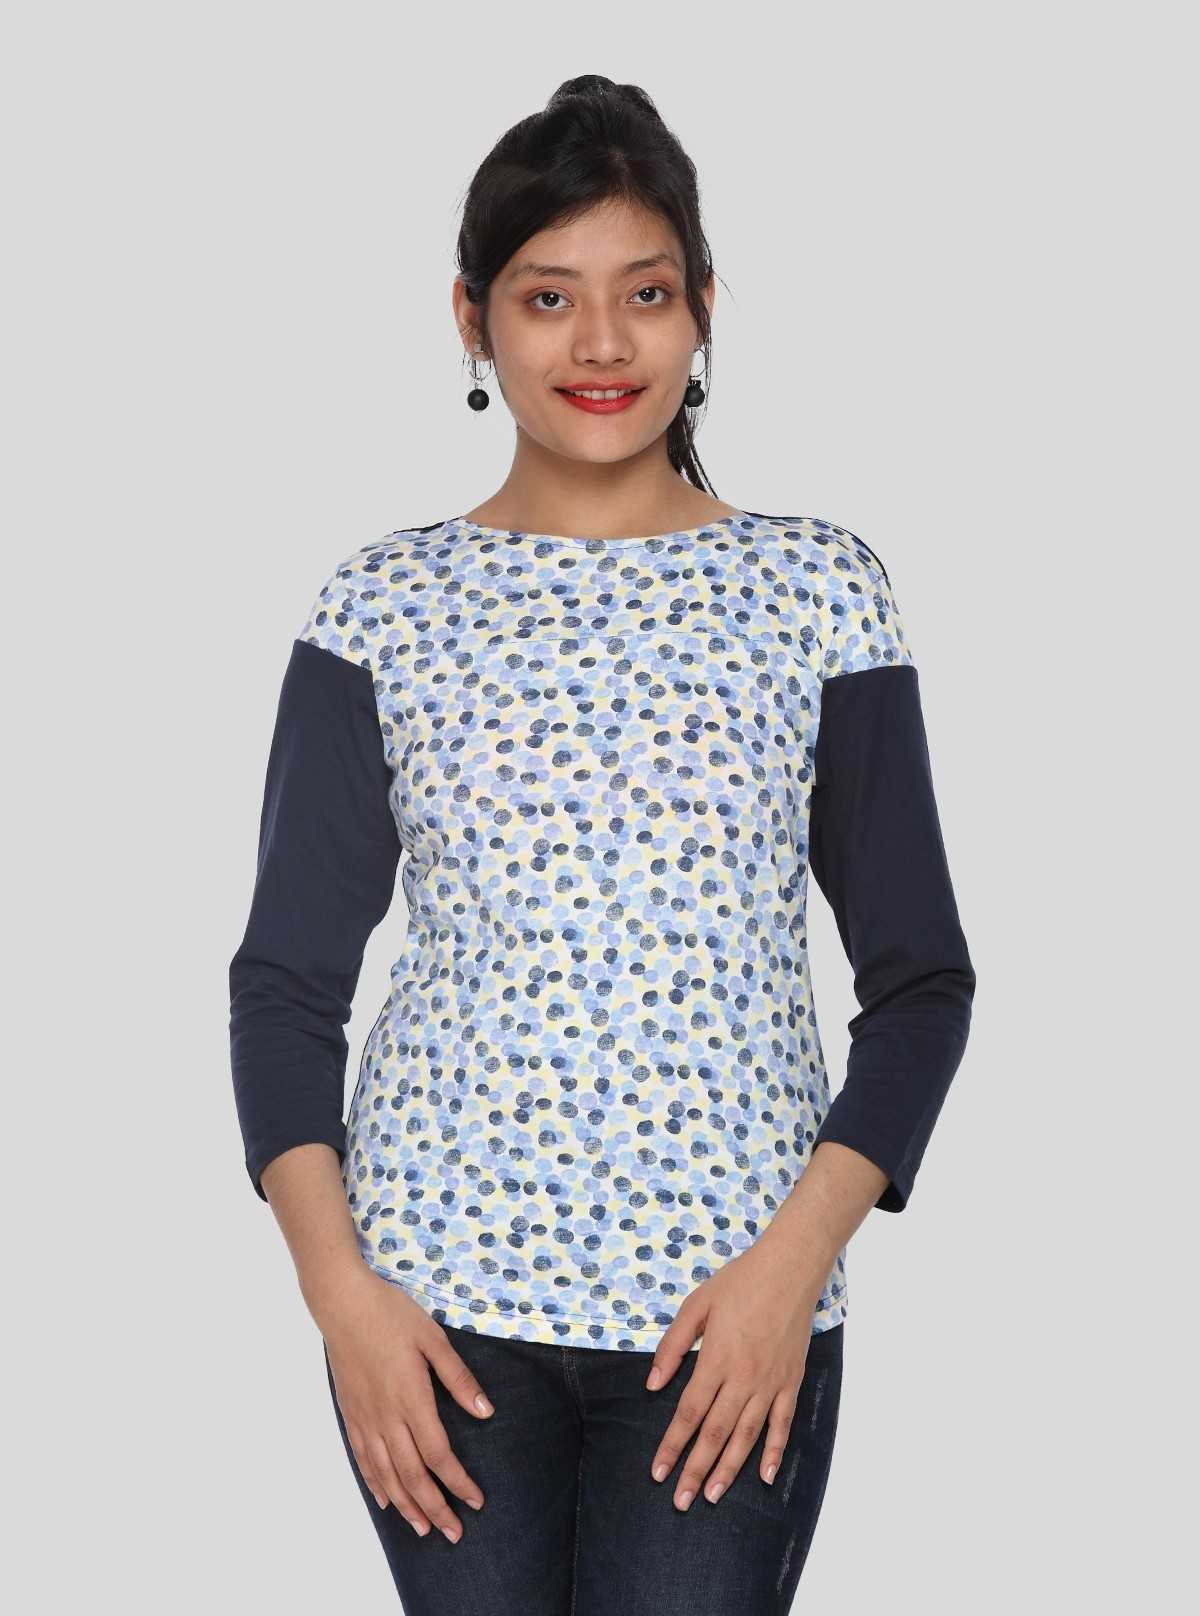 Graphic Printed Womens Top